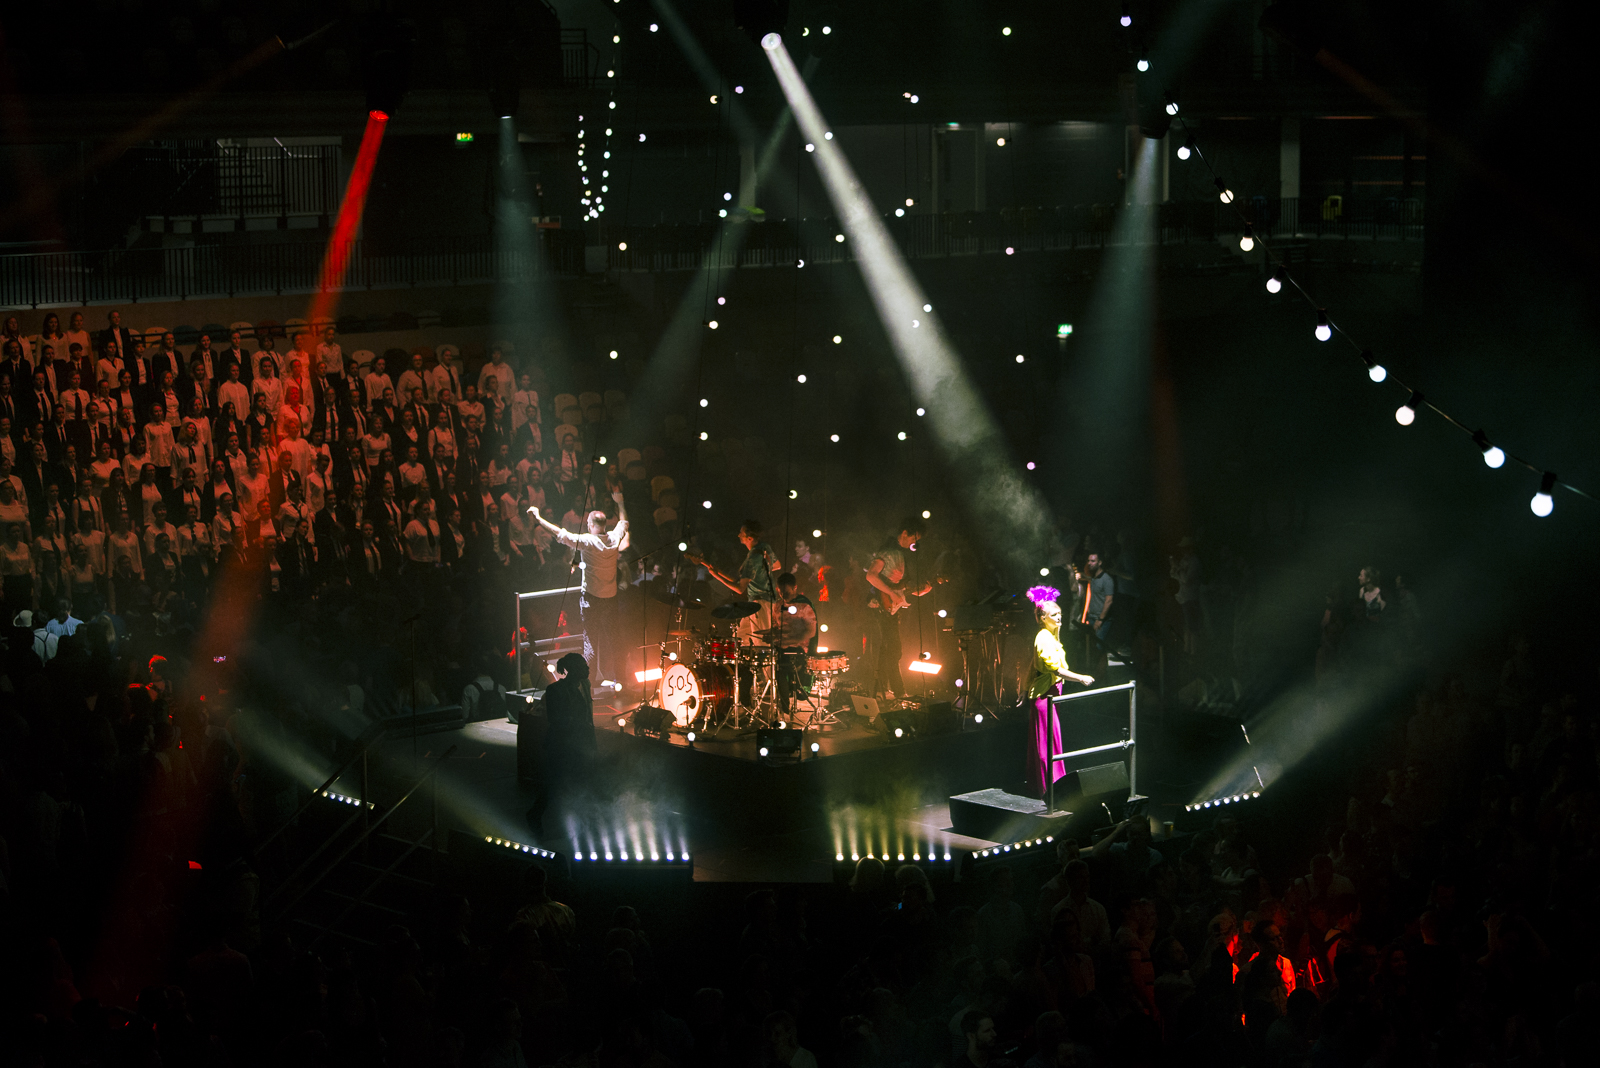 copperbox_20-4-18-image-84.jpg